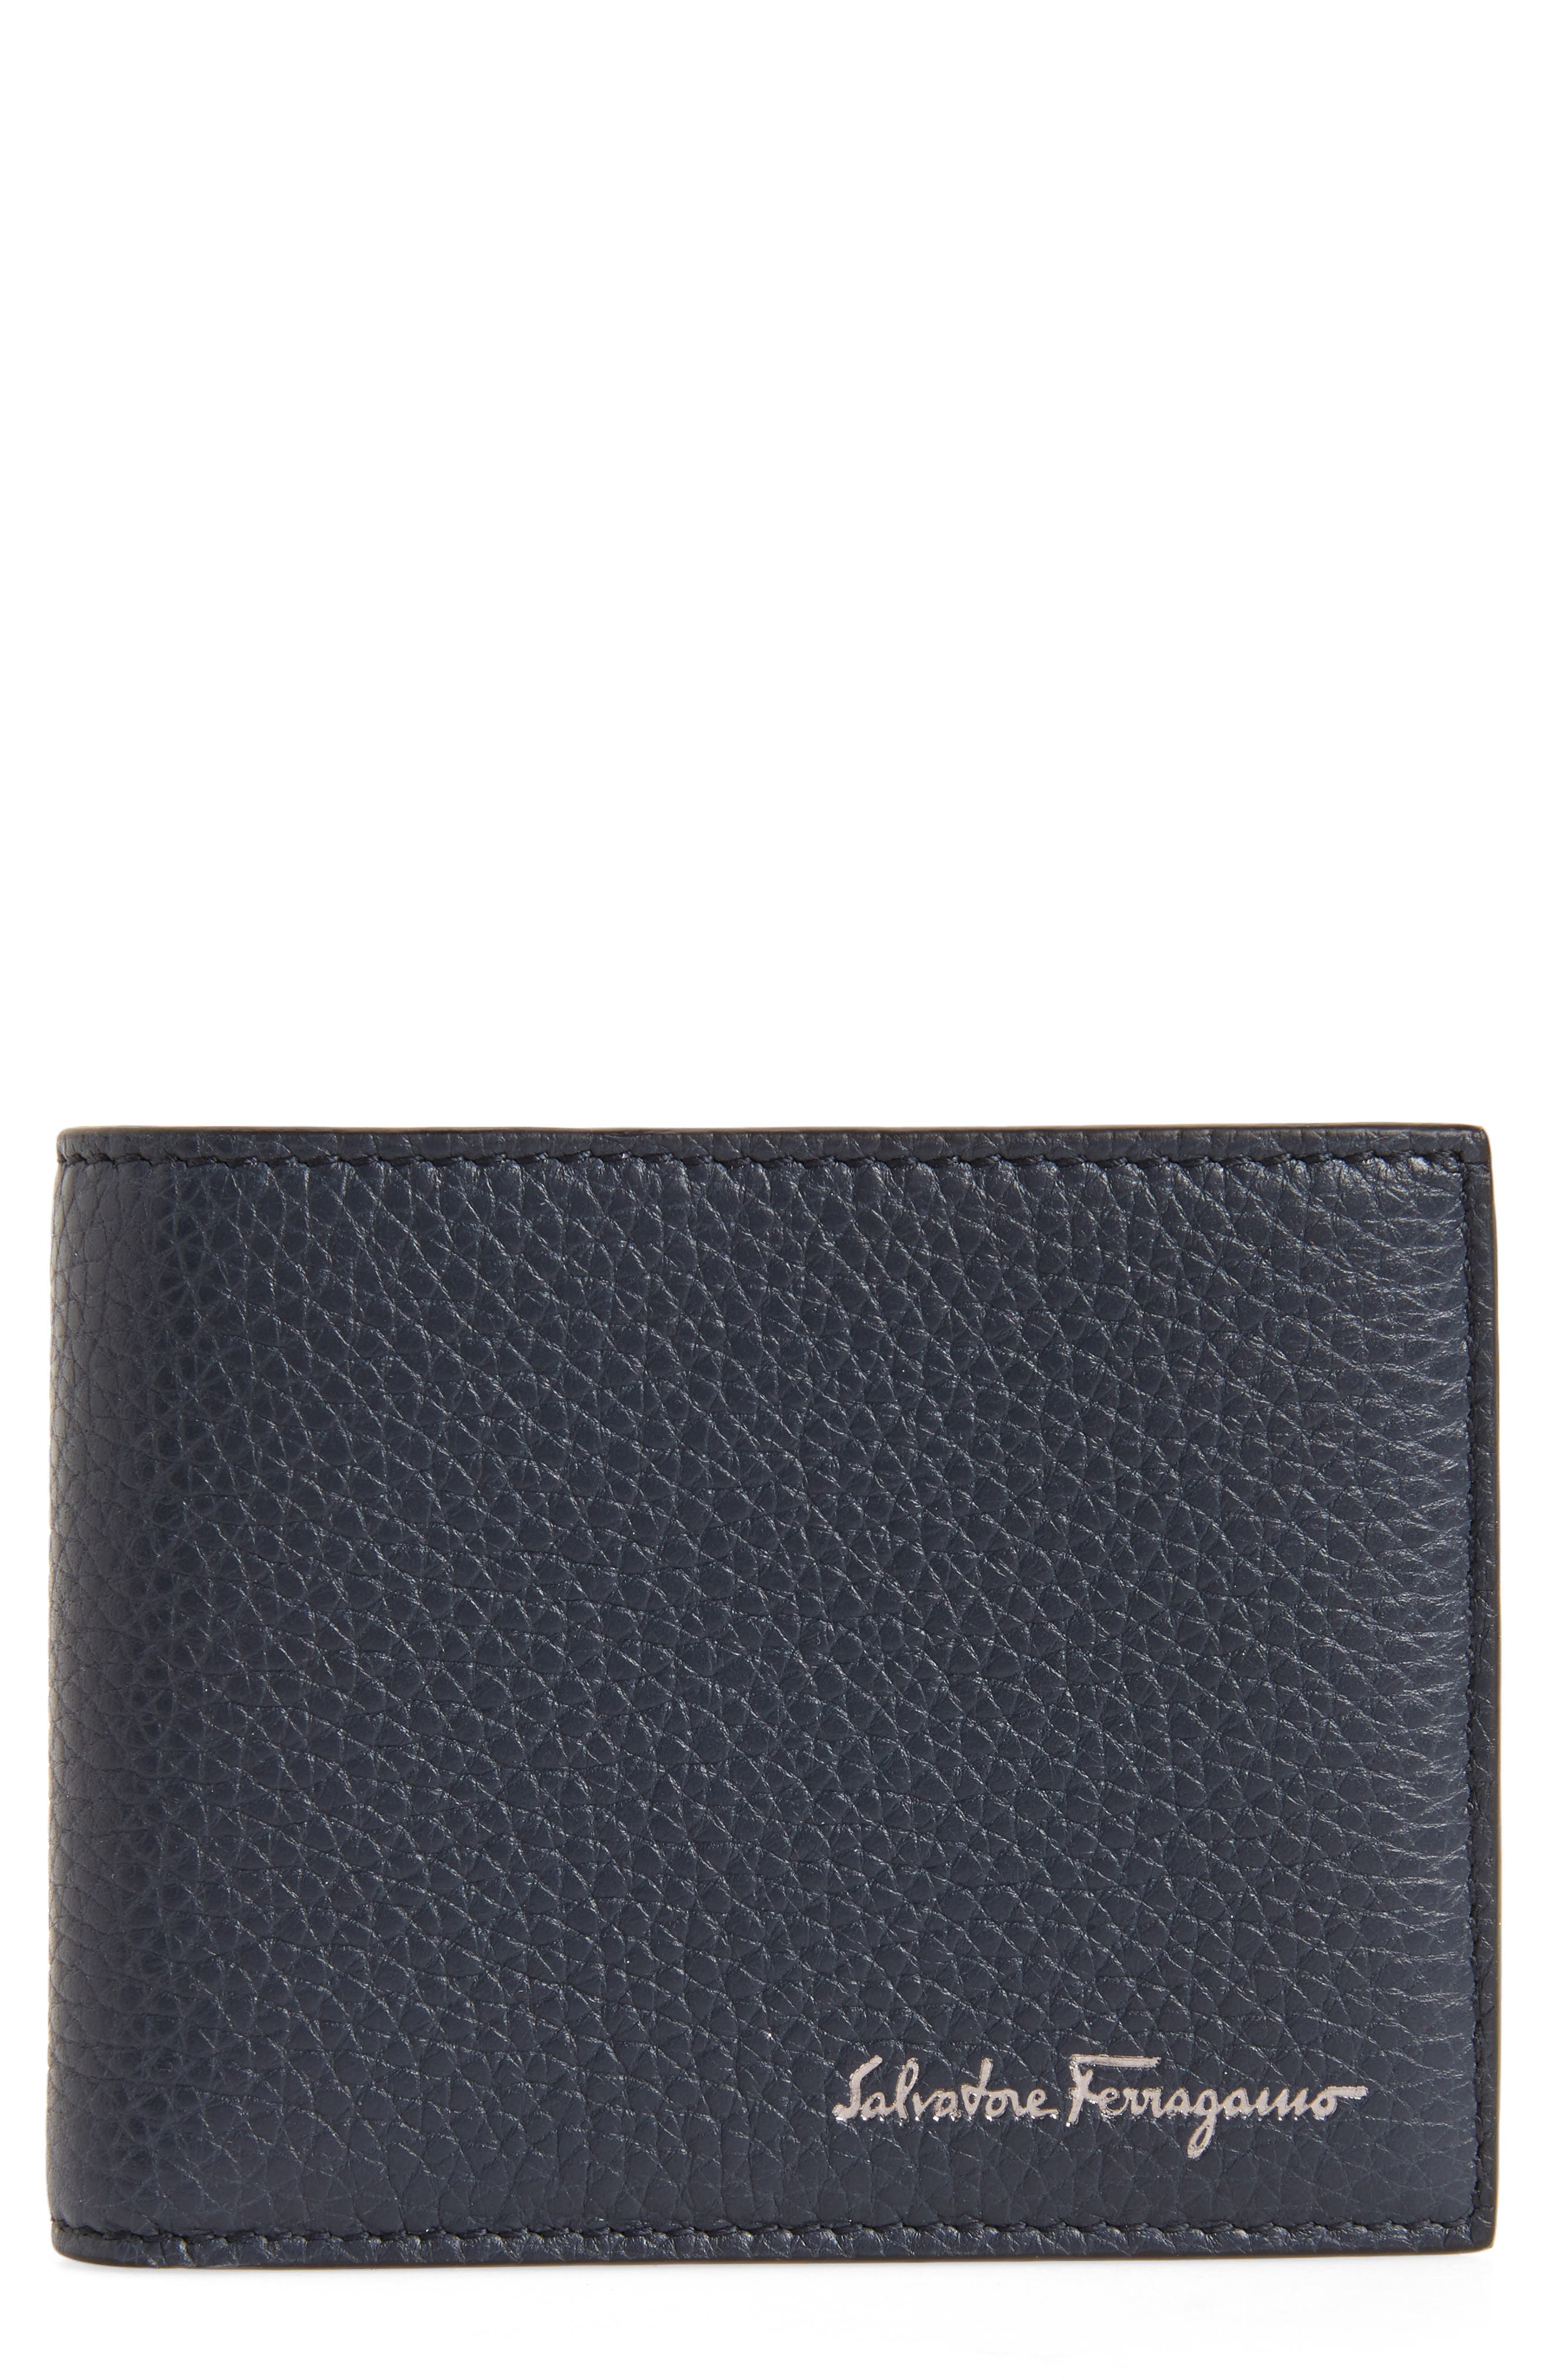 SALVATORE FERRAGAMO Firenze Leather Bifold Wallet